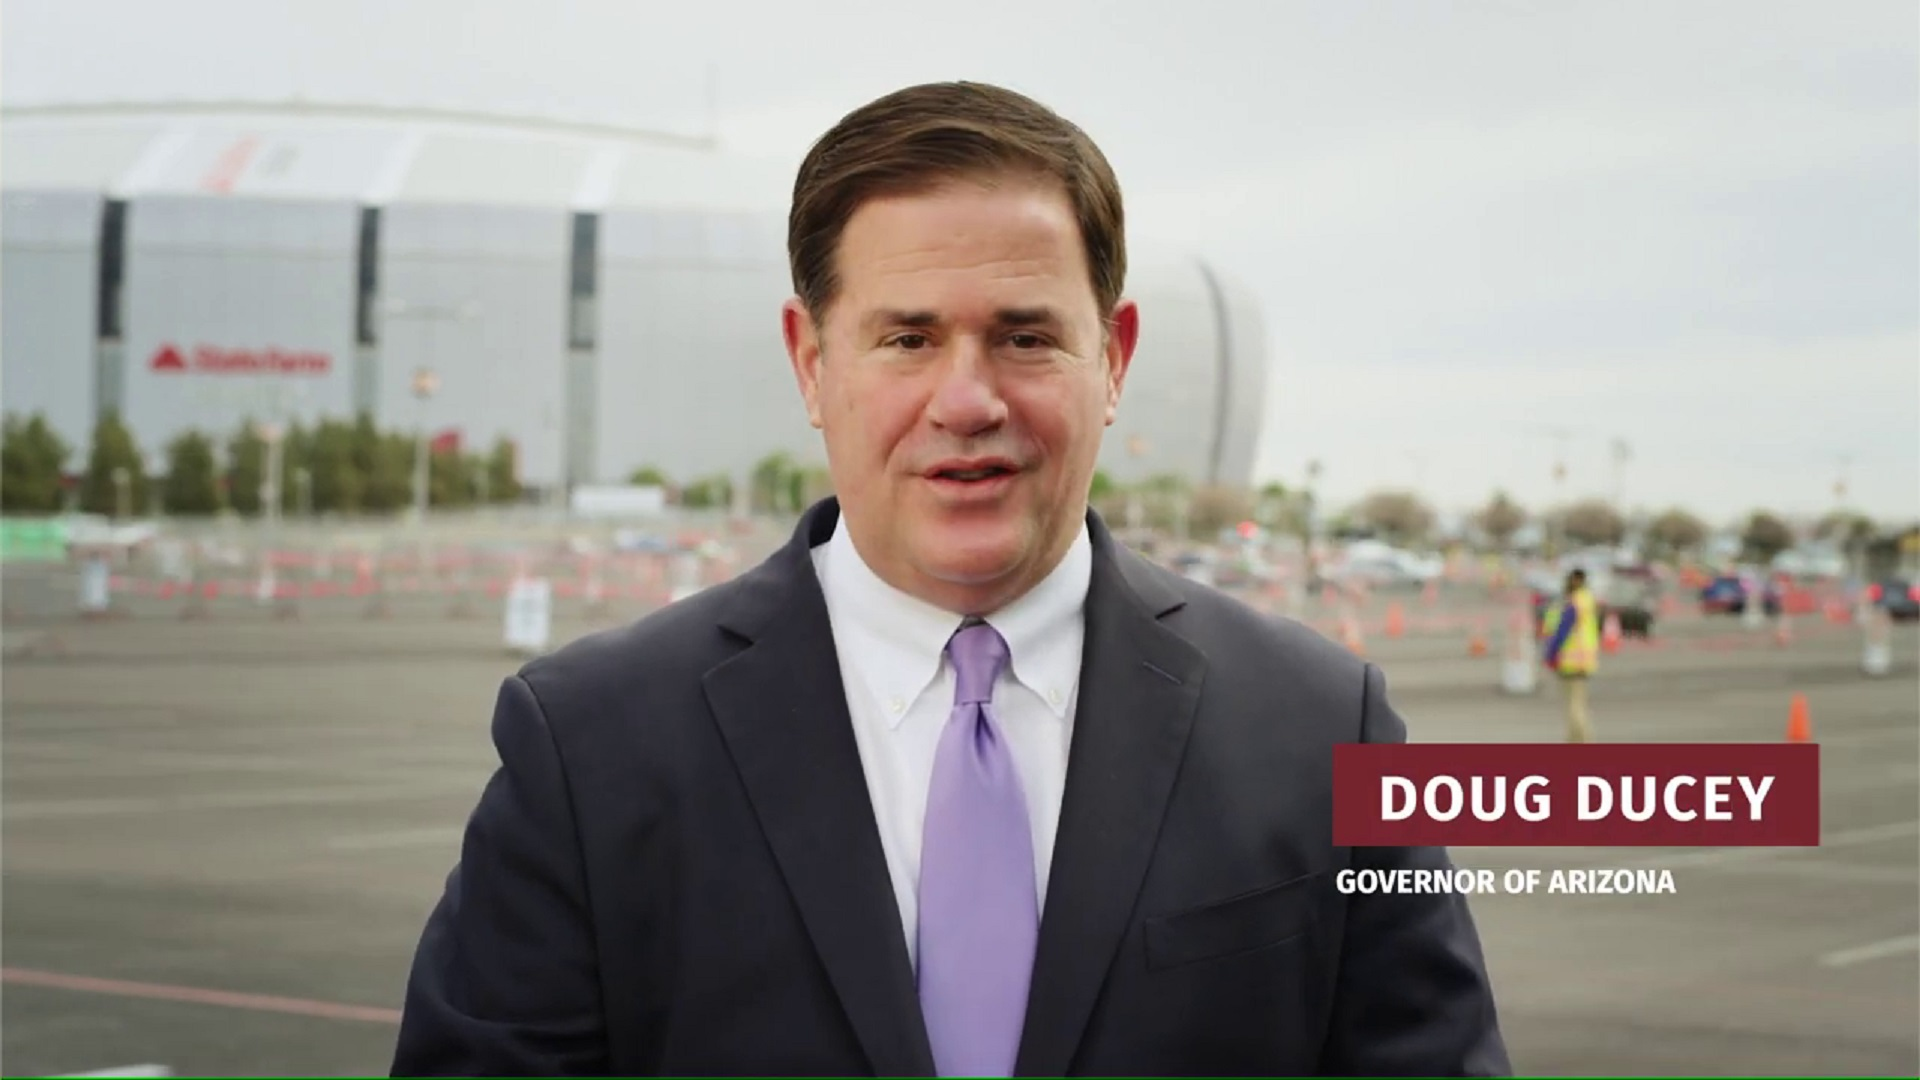 Governor Doug Ducey urges Arizonans to get their COVID-19 vaccination in a public service announcement released March 23, 2021.